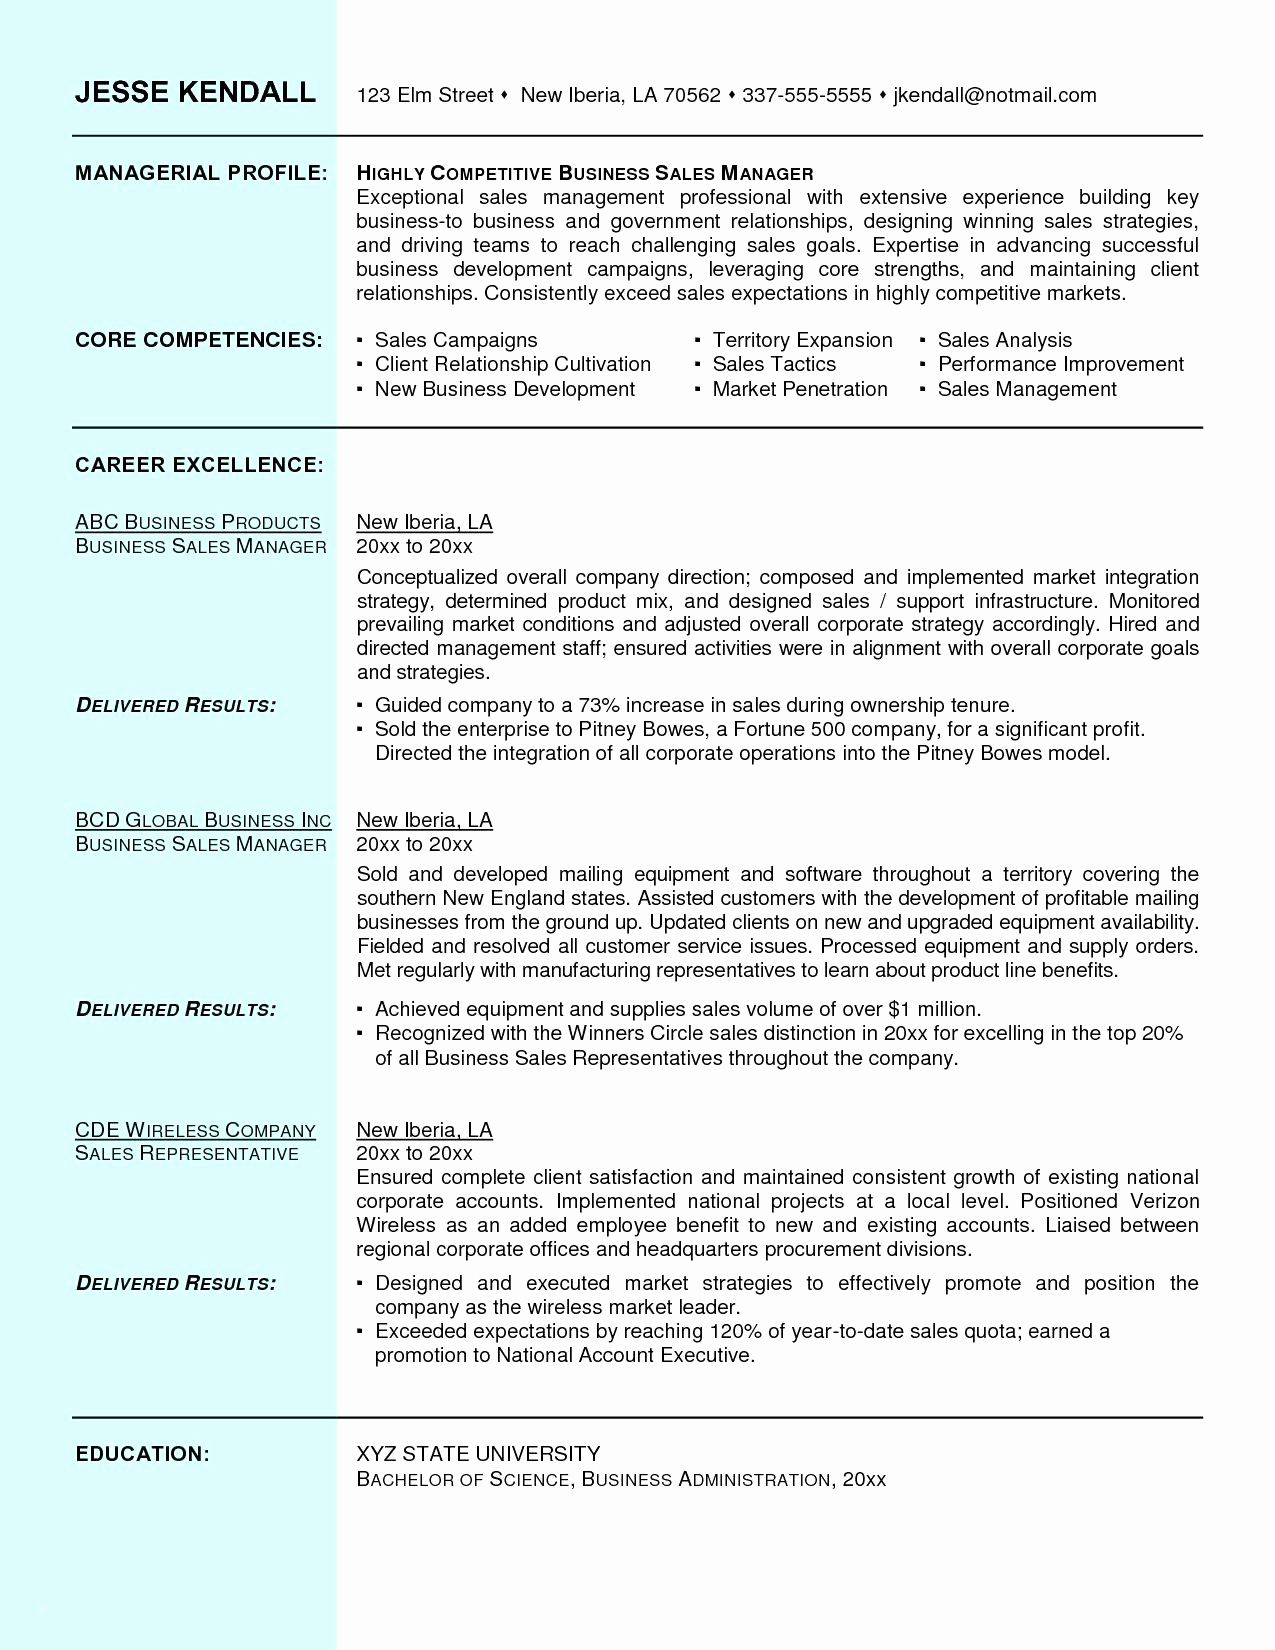 Relationship Manager Resume - Client Relationship Manager Resume Unique Sample Resume Skills